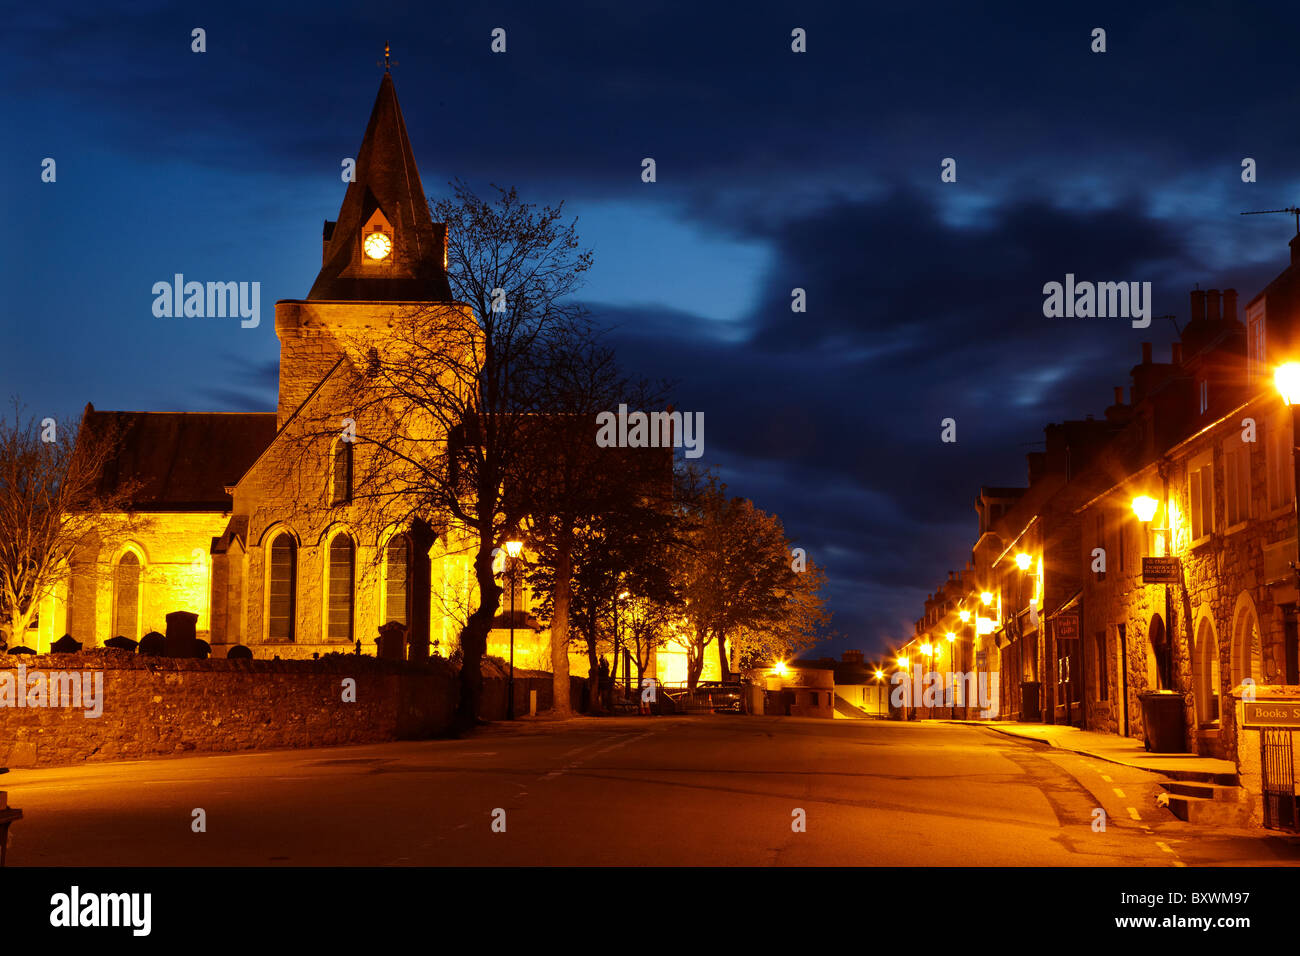 Dornoch Cathedral, floodlit at night (built in the 13th century), and Hight Street, Dornoch, Highlands, Scotland, - Stock Image